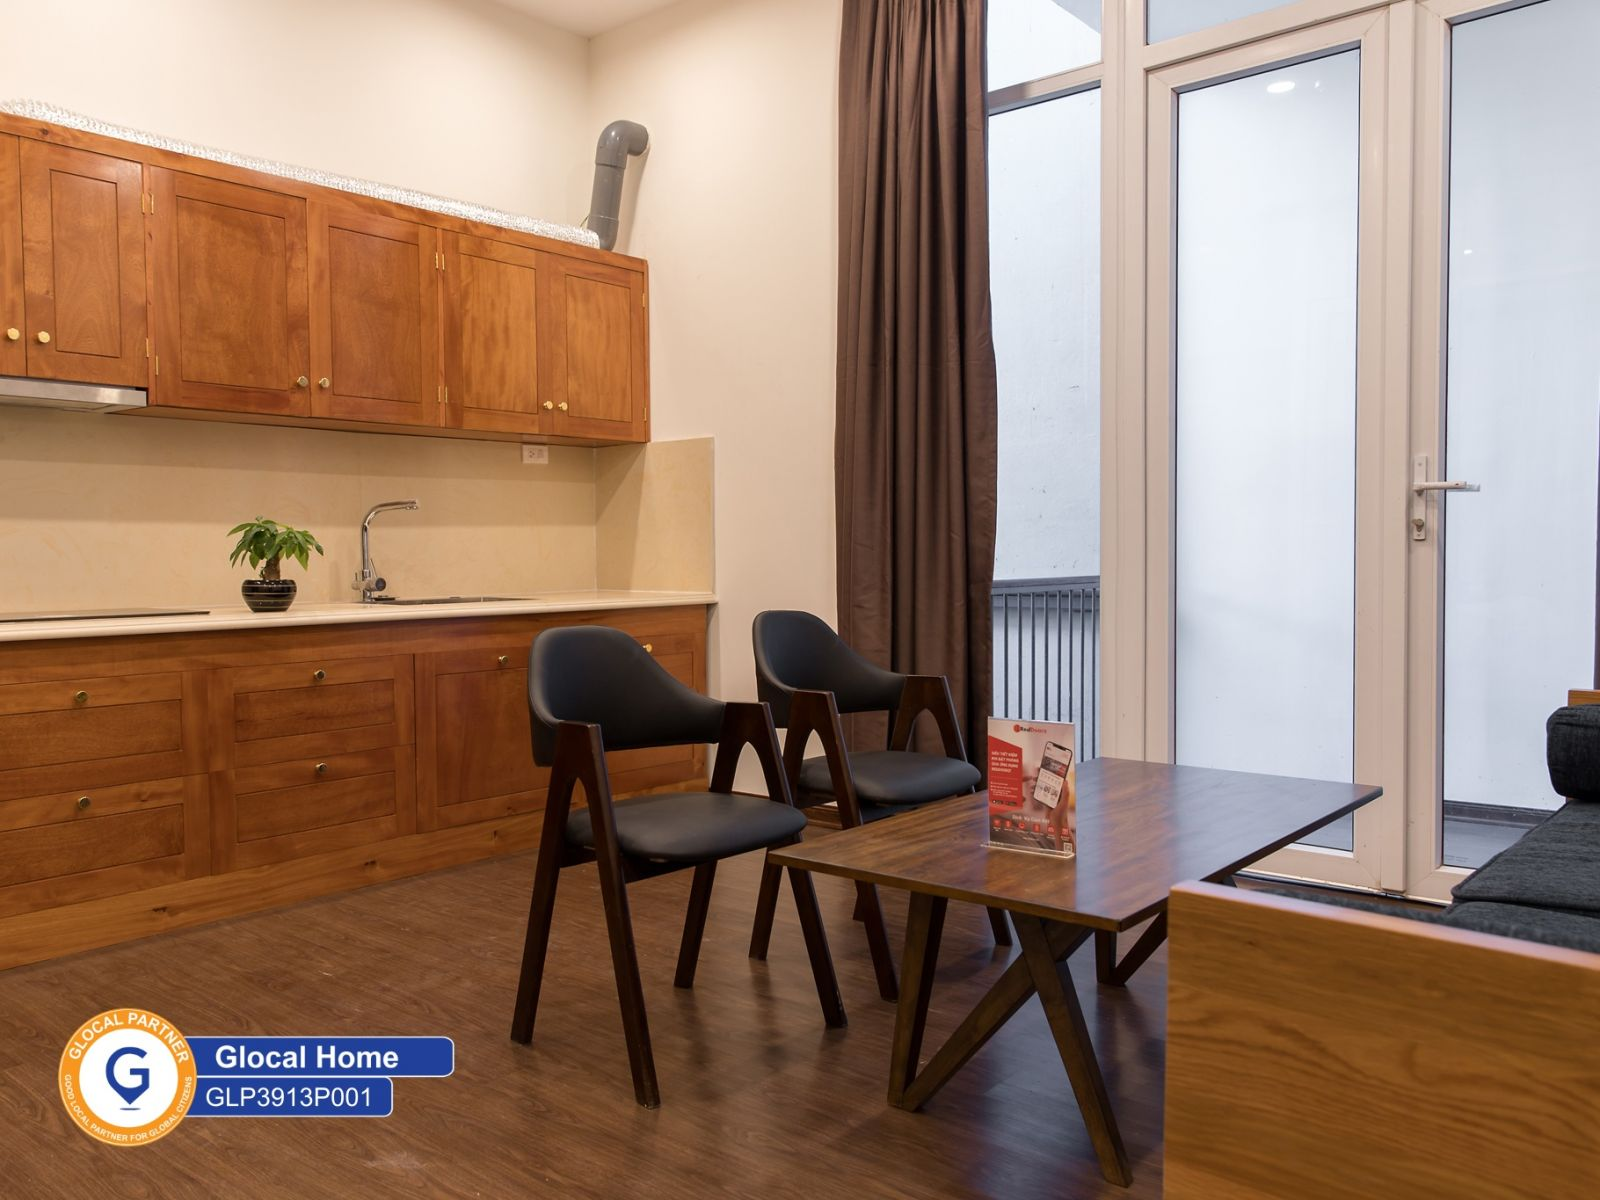 1 bedroom apartment with wooden floor, modern furniture in Au Co